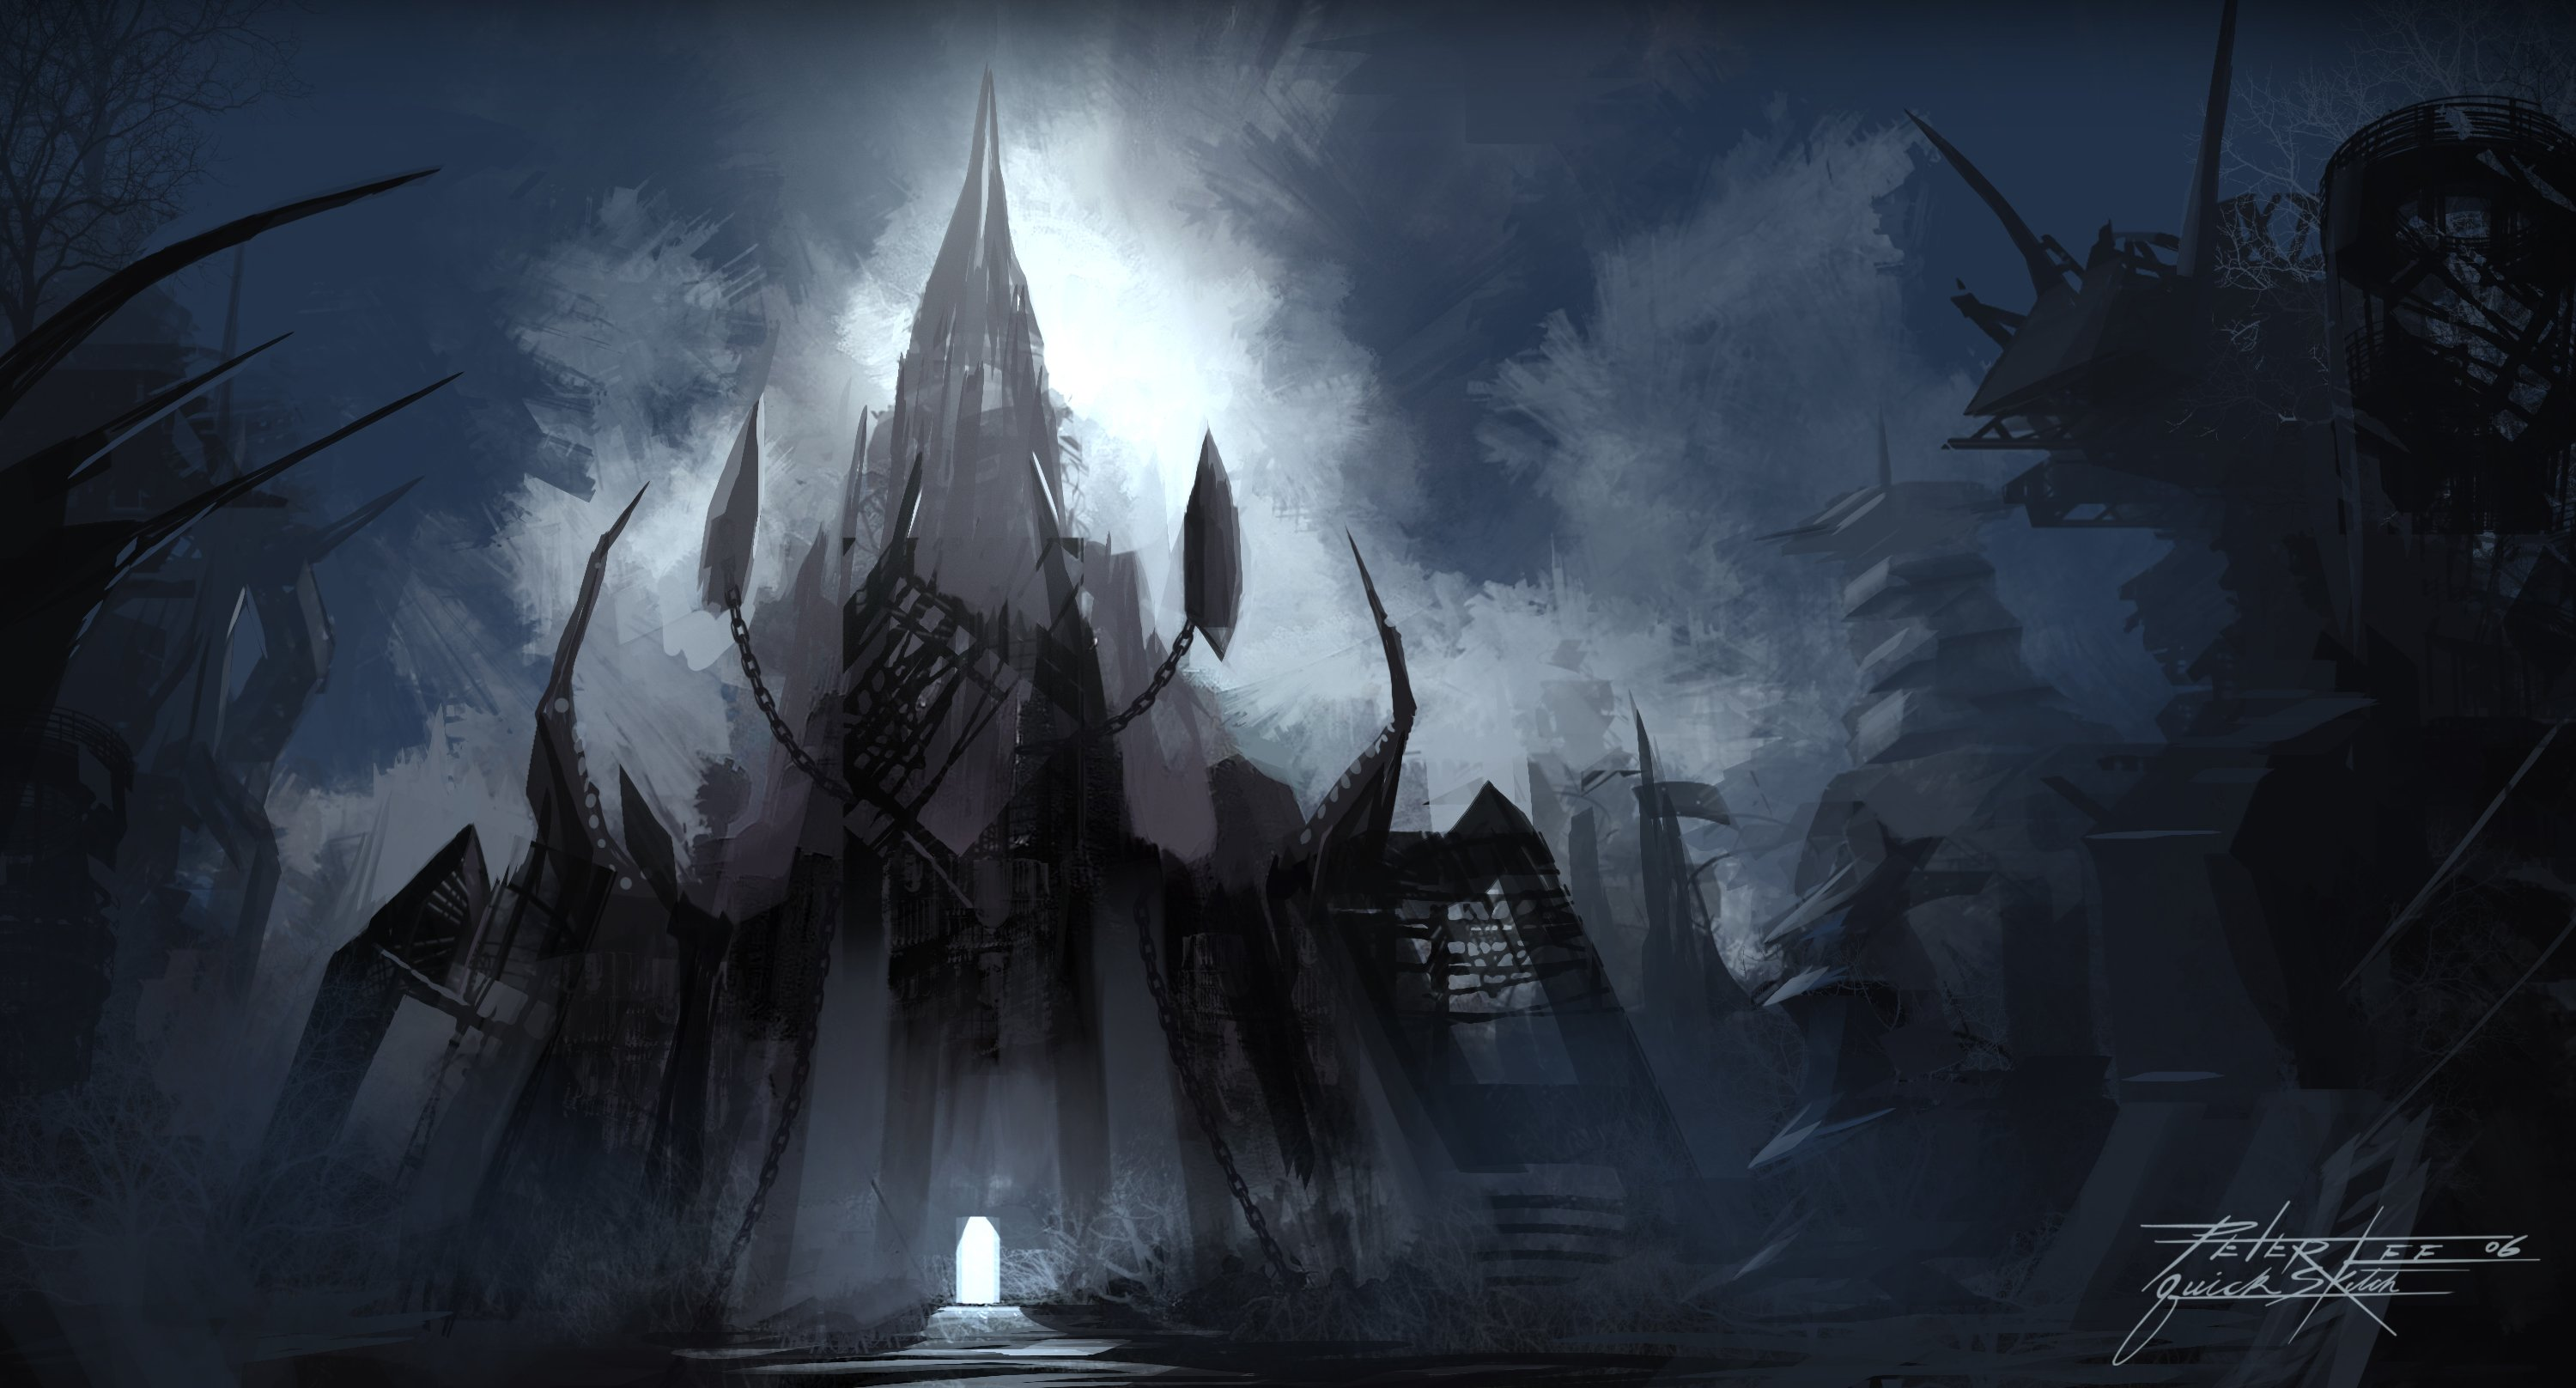 Artsy Fartsy Dark Souls Ii Concept Art: Your Wiki Guide To The